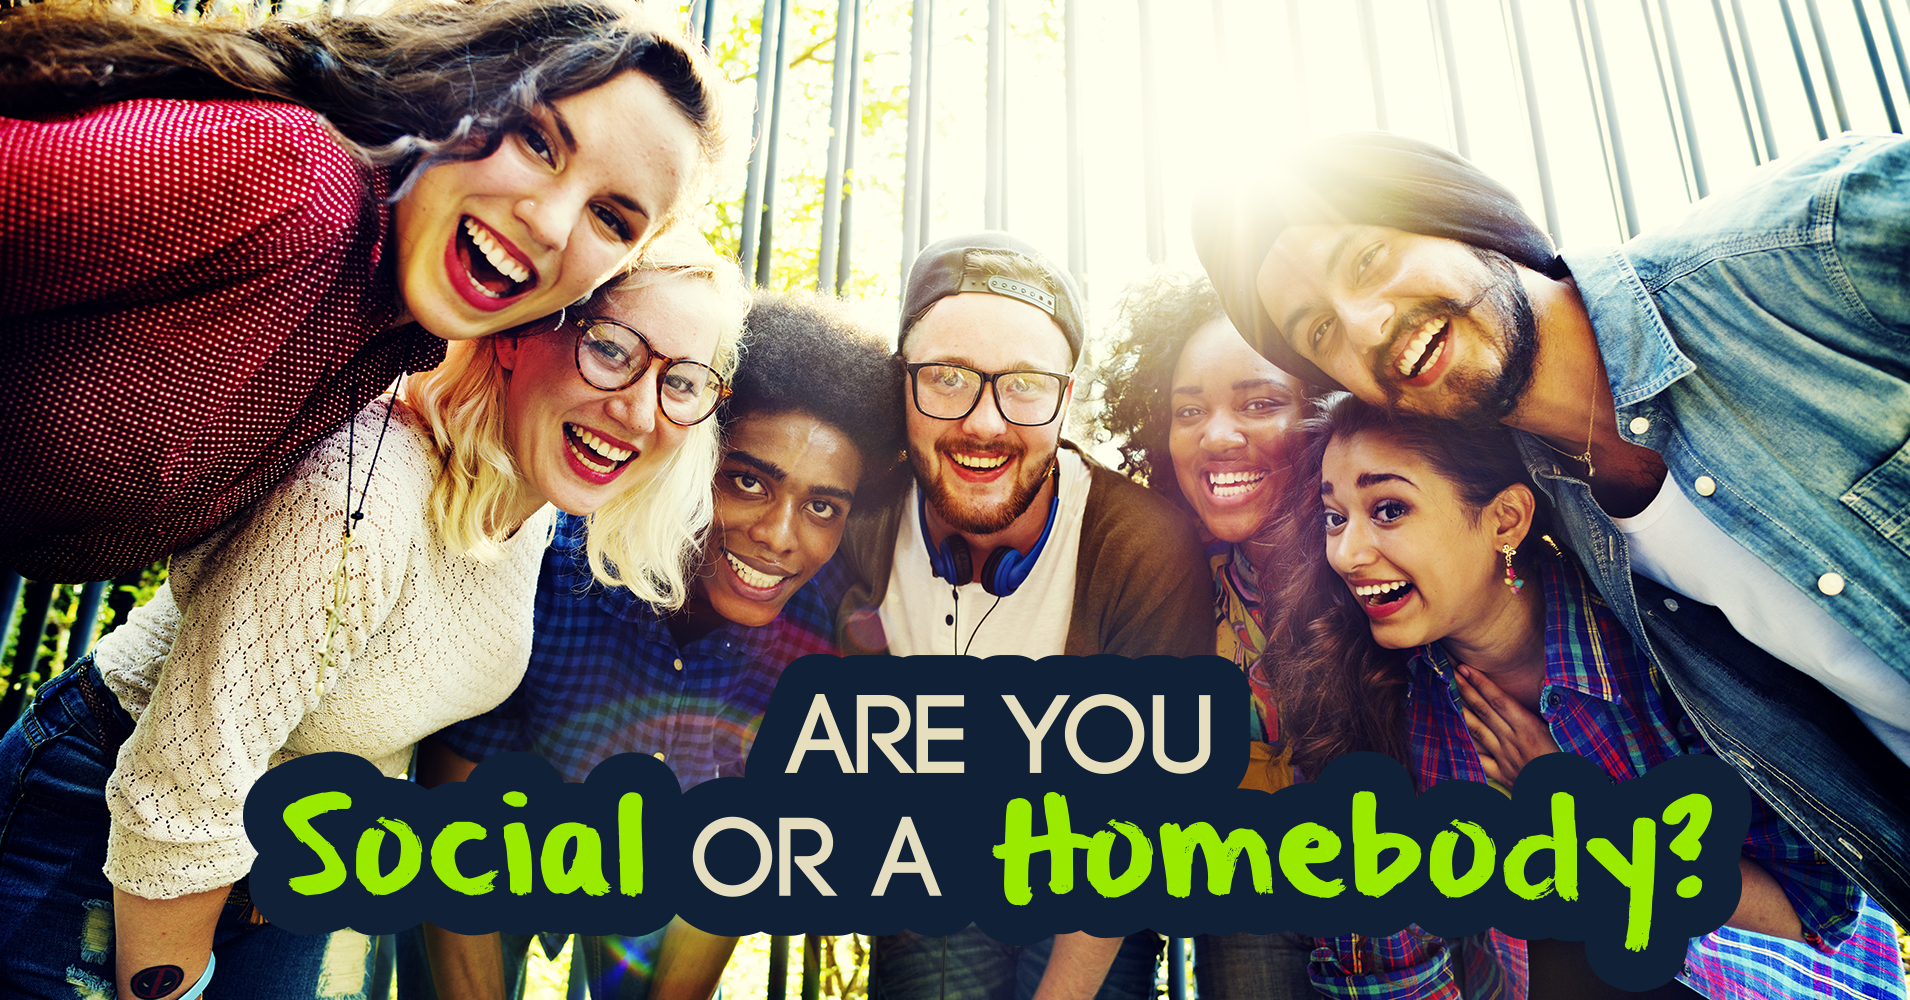 Are You Social or a Homebody? Question 2 - Which pet best